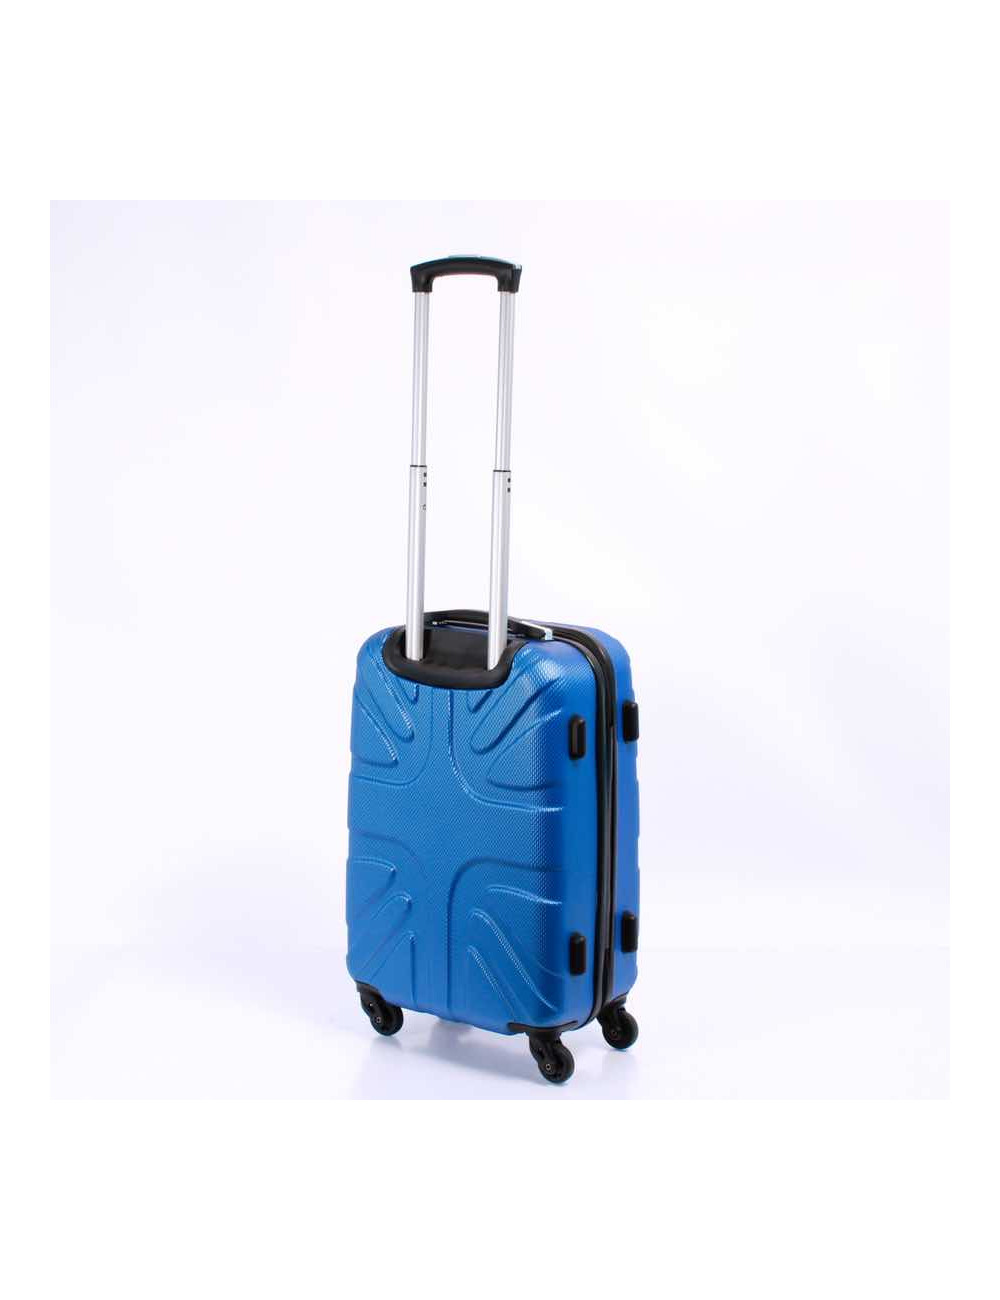 Le Bagage - Valise Cabine -...